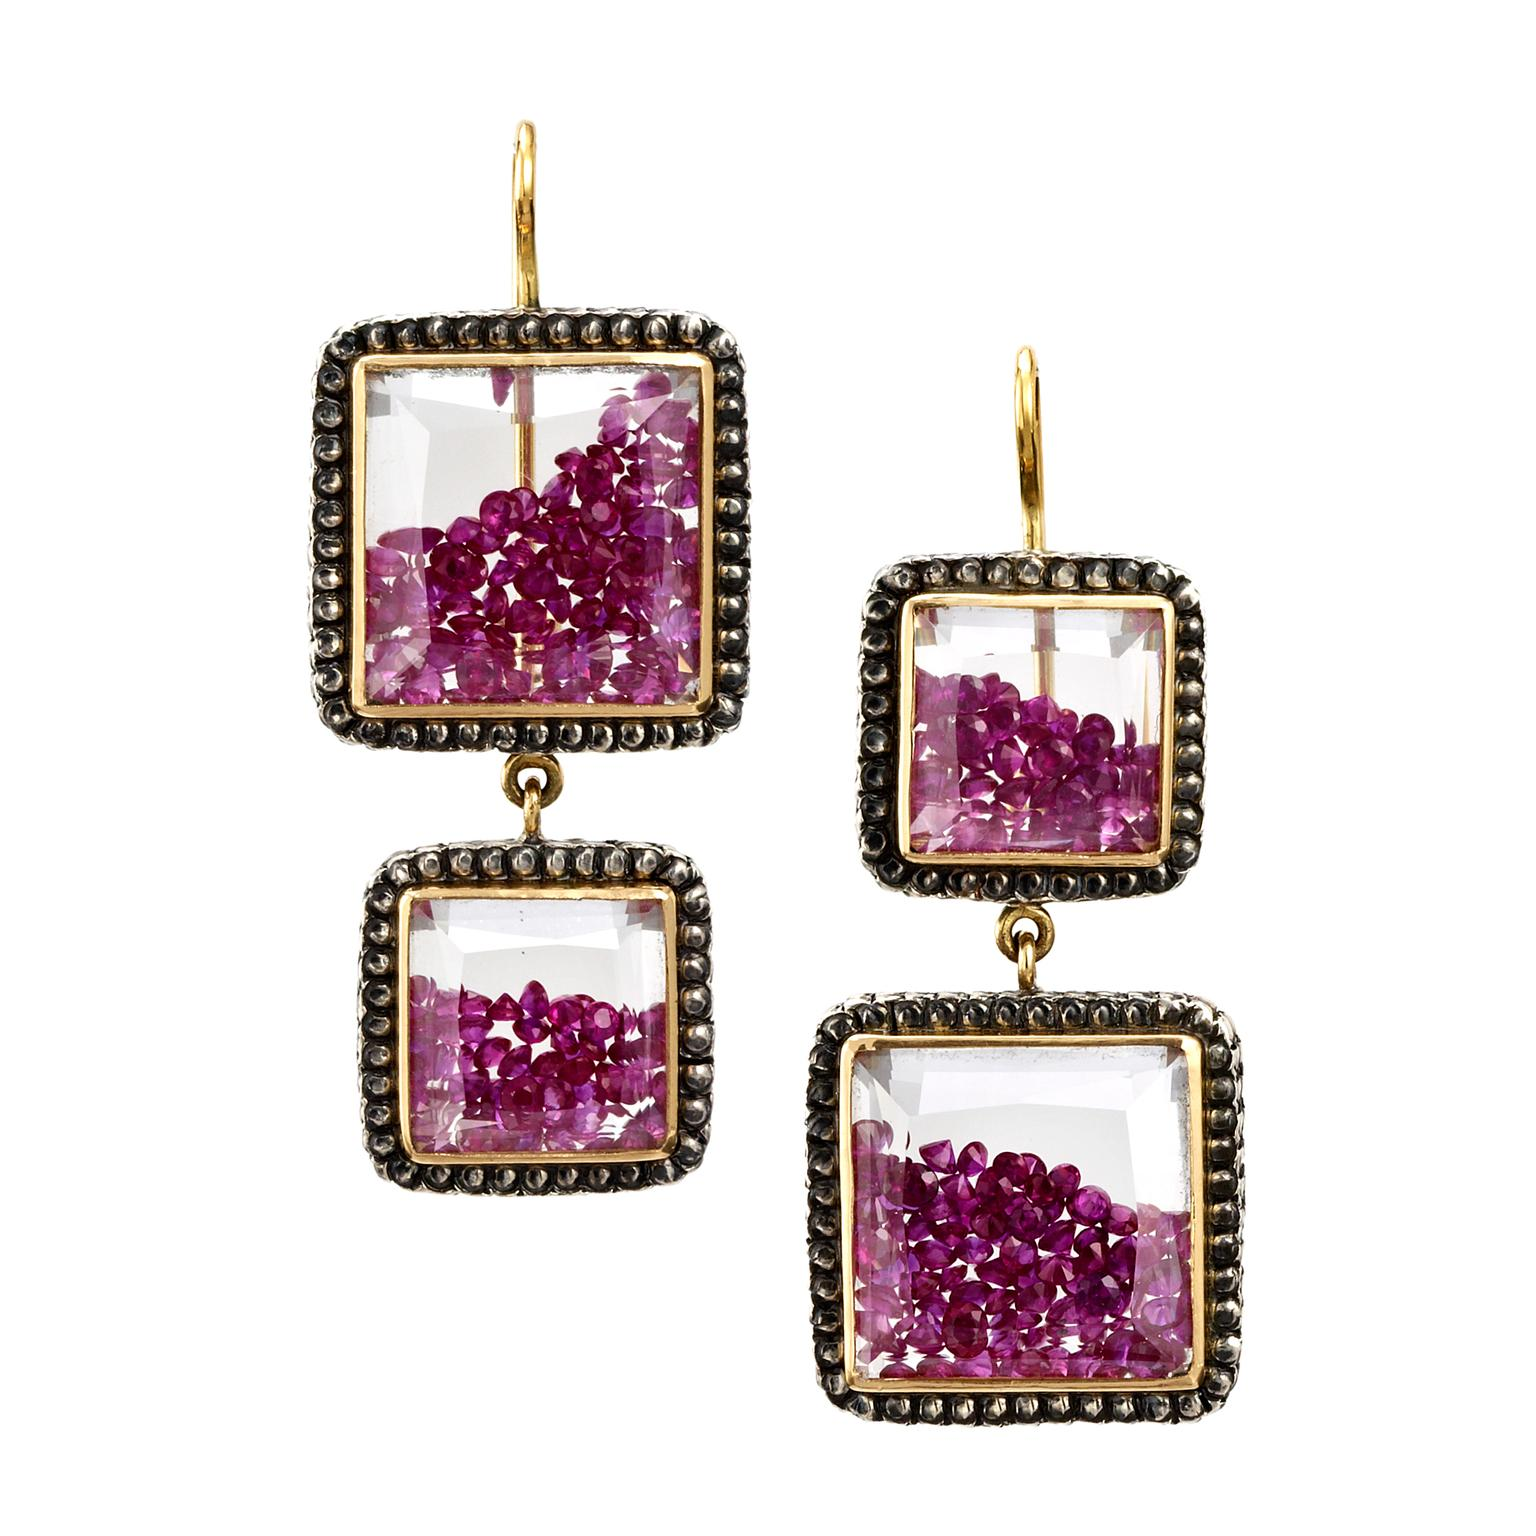 Moritz Glik ruby and sapphire earrings in yellow gold